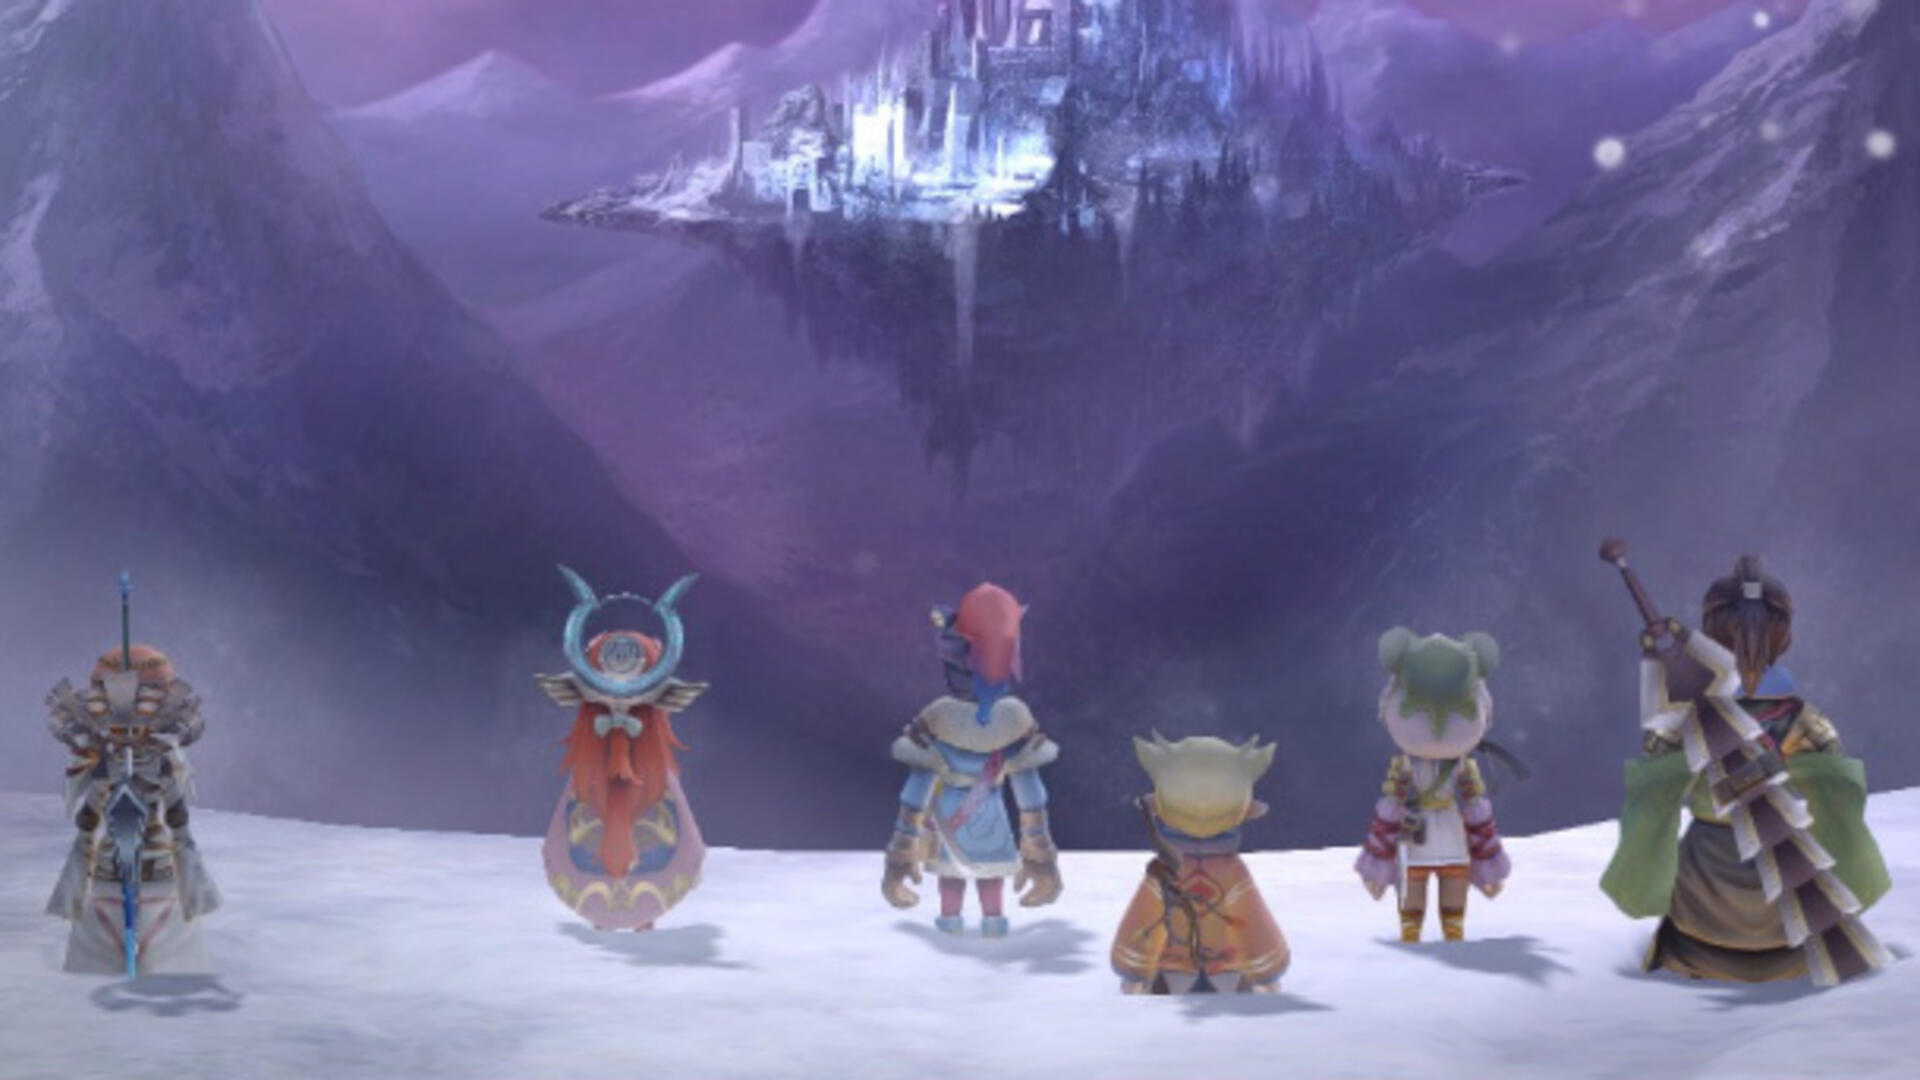 I Am Setsuna Becomes a Nintendo Switch Launch Title